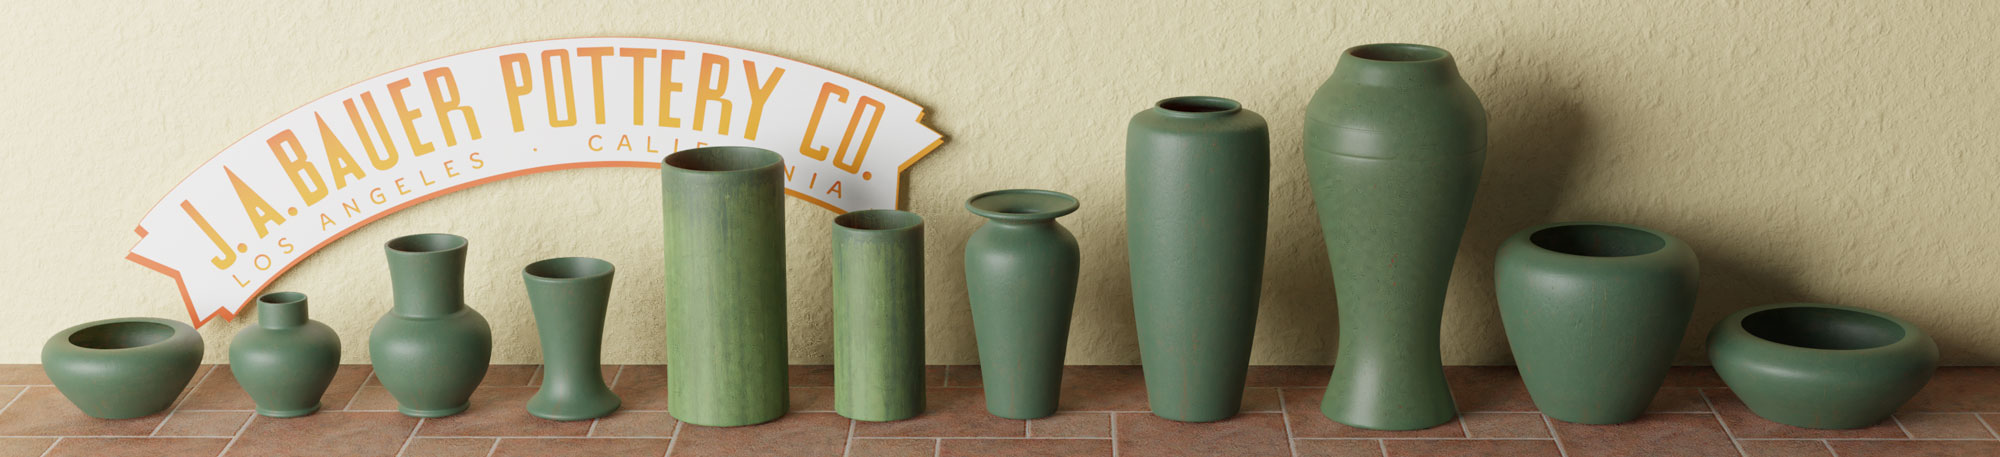 QwkDog Bauer Pottery Green Artware Banner